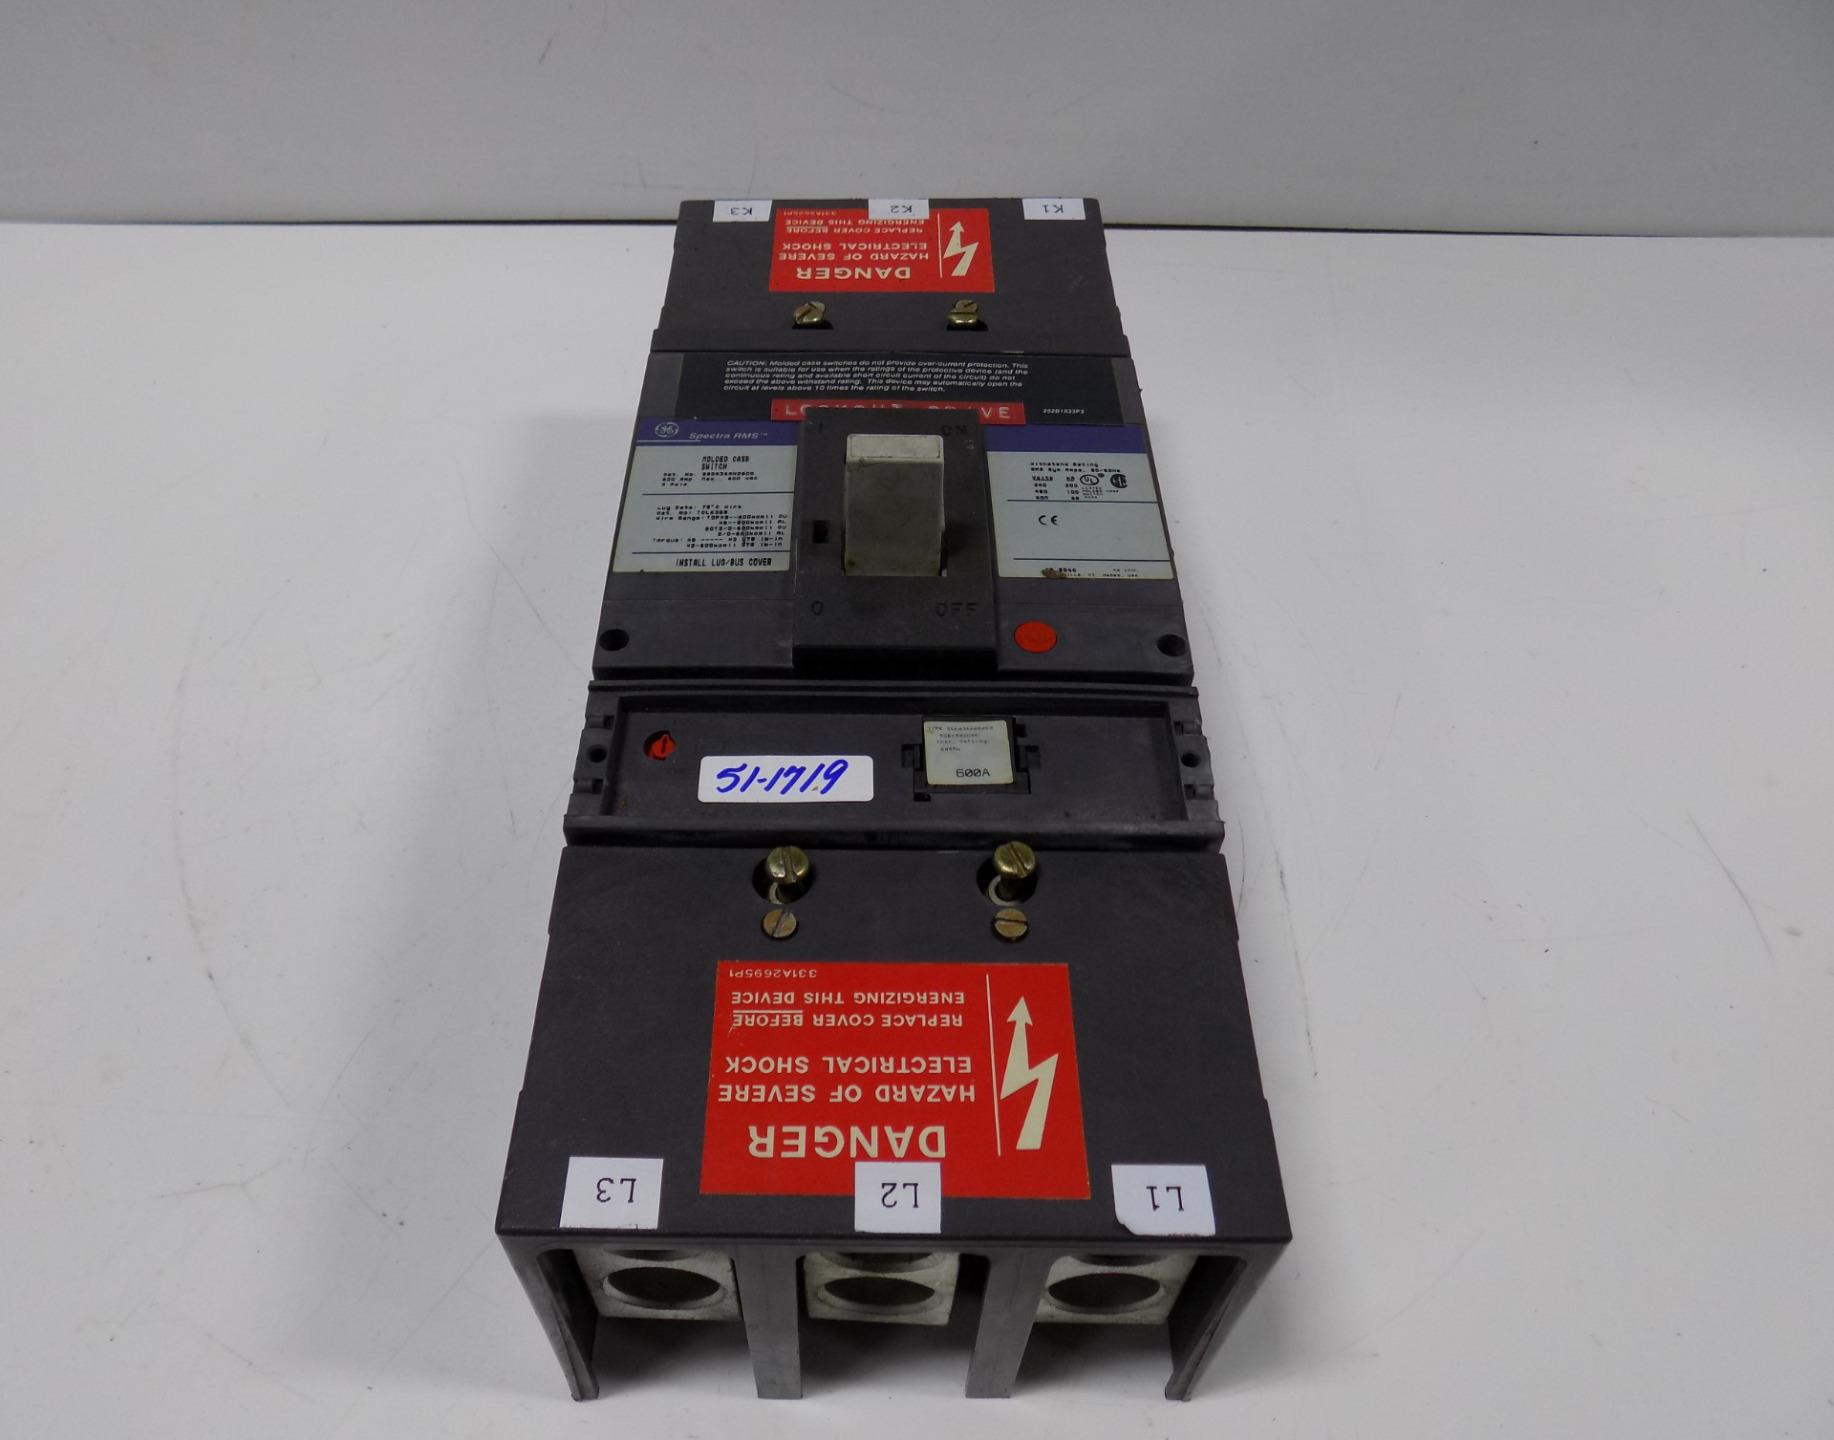 ge spectra rms molded case switch 600 amp 3 pole sgda36an0600 ebay. Black Bedroom Furniture Sets. Home Design Ideas